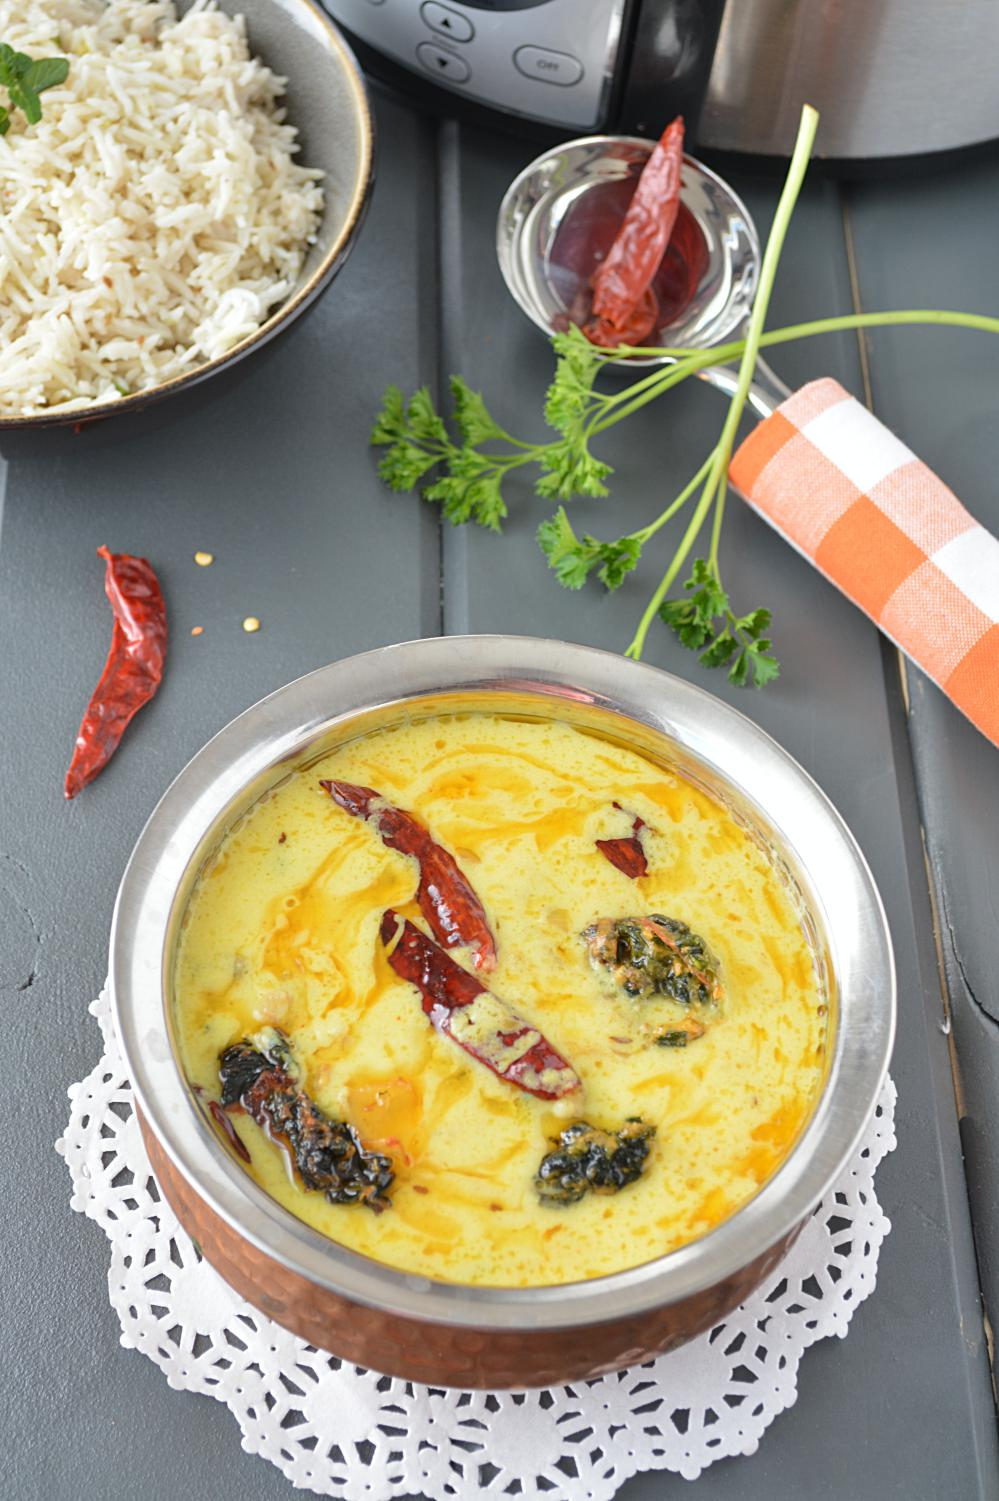 Punjabi kadhi recipe in slow cooker how to make crockpot kadhi punjabi kadhi recipe in slow cooker forumfinder Image collections